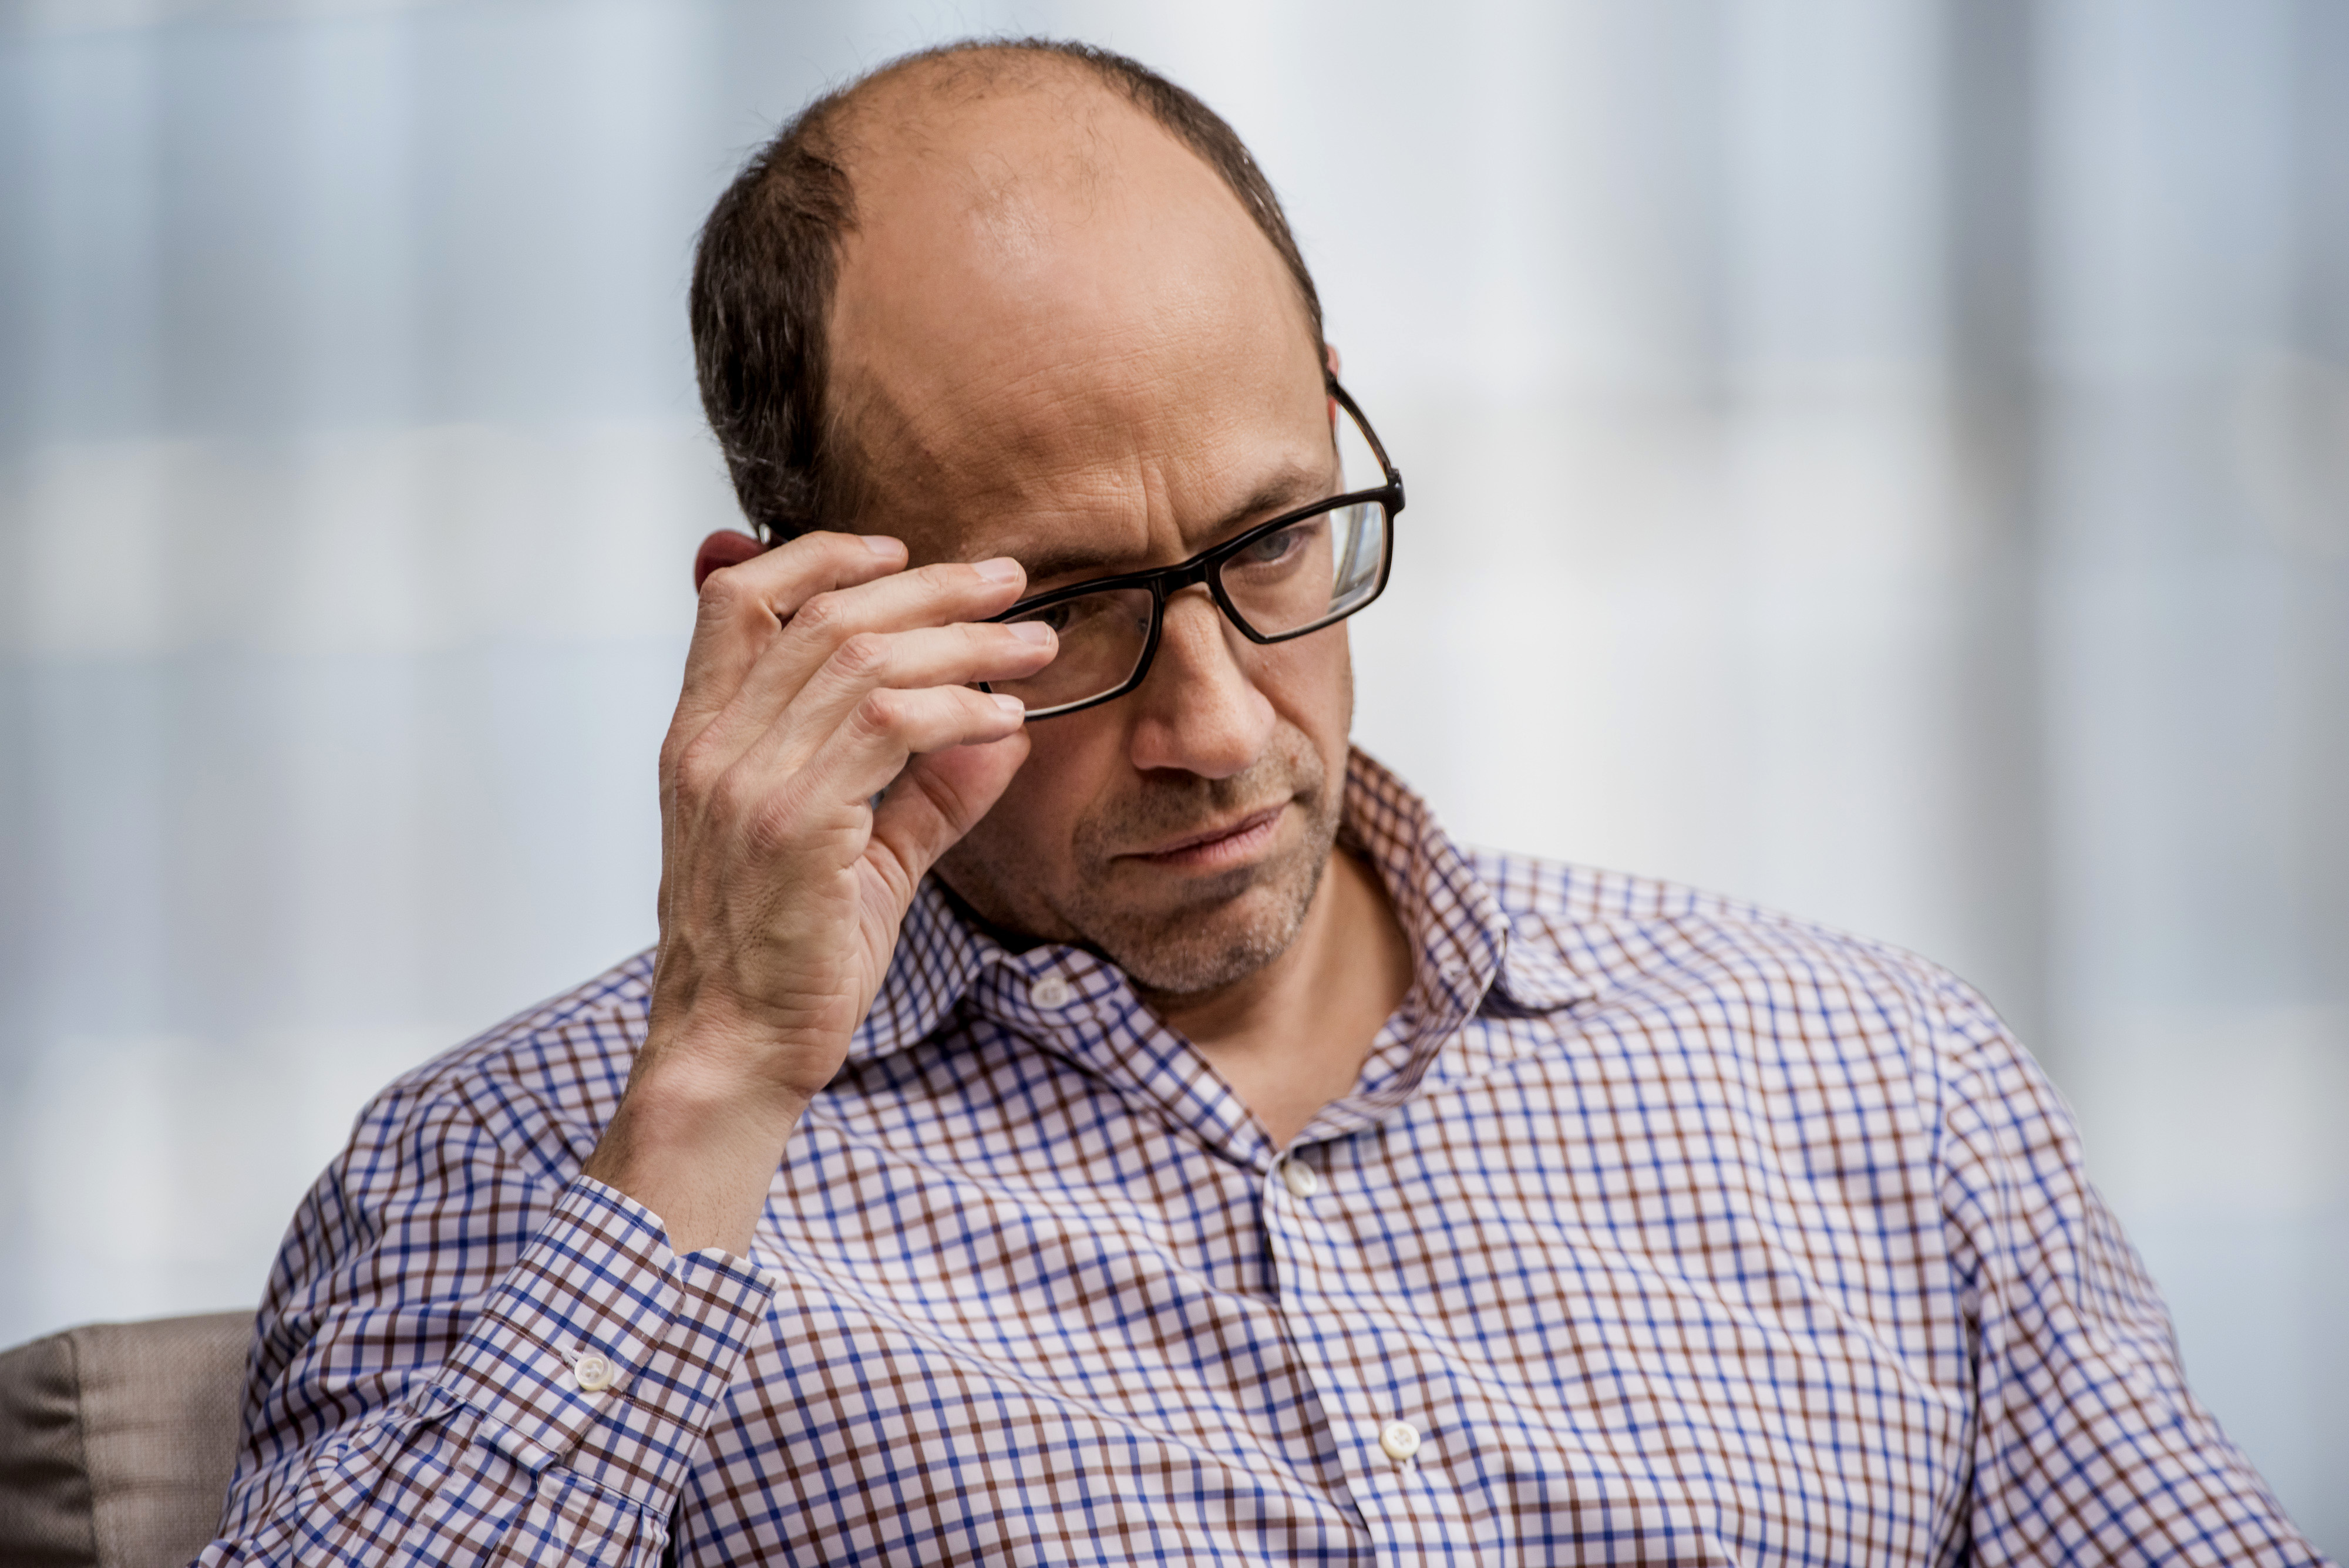 """Richard """"Dick"""" Costolo, chief executive officer of Twitter Inc., pauses during a Bloomberg Television interview in San Francisco, California, U.S., on Wednesday, March 18, 2015. Twitter Inc. provides an online social networking and micorblogging service offering users activity, read and post tweets worldwide. Photographer: David Paul Morris/Bloomberg *** Local Caption *** Dick Costolo"""